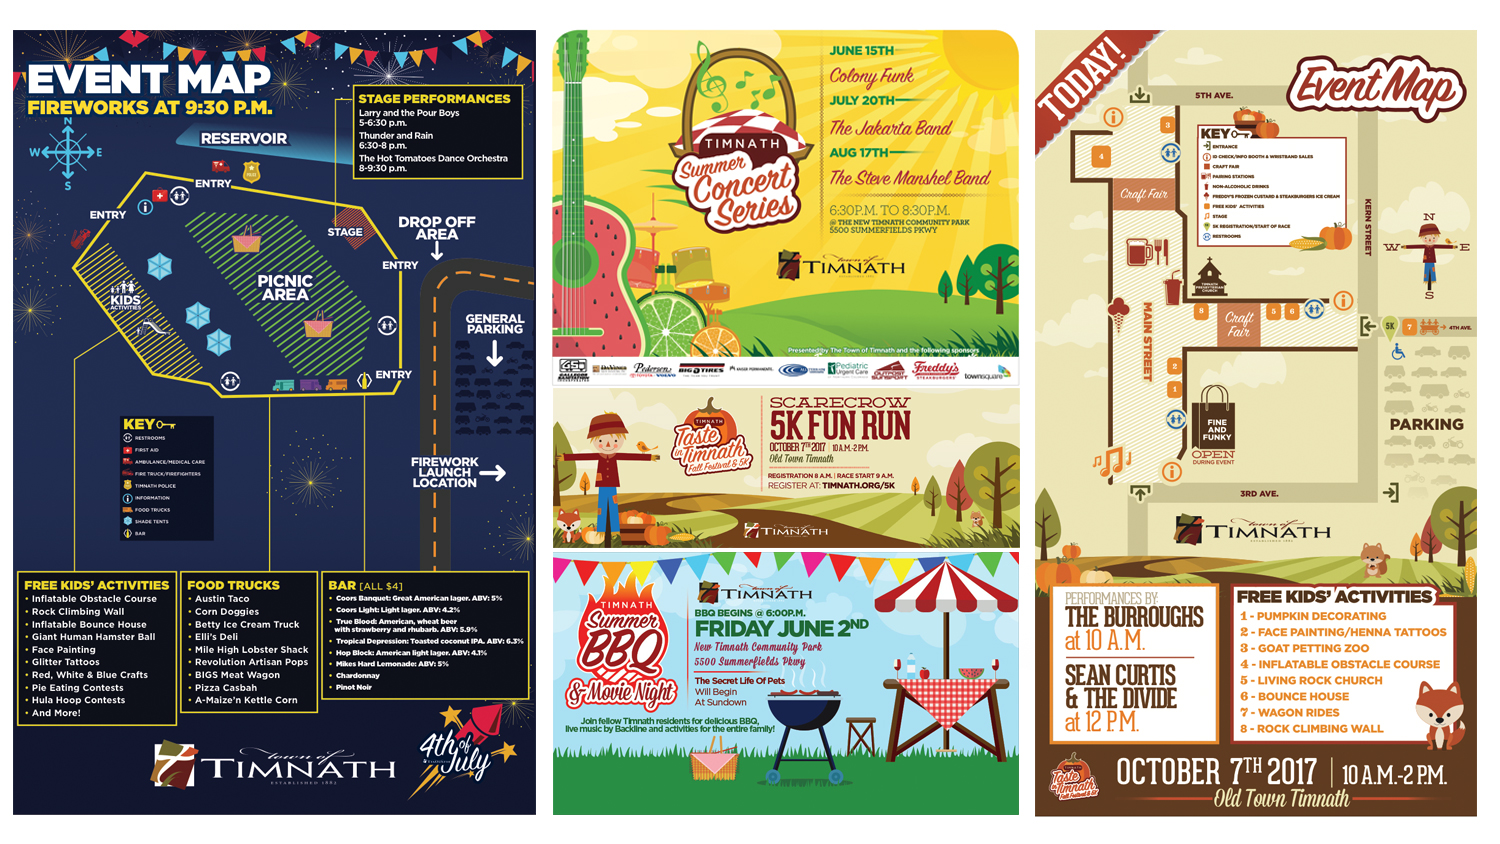 During the 2017 event season we worked in partnership with a local marketing firm to develop and execute all of the promotional materials for the town of Timnath in northern Colorado. We designed all the advertising and promotional materials, signage/wayfinding, menus and maps for all of the events. Keeping in mind a consistent brand aesthetic that was fun and family friendly. Note: the event logos were provided to us and not designed by Smart Minds.